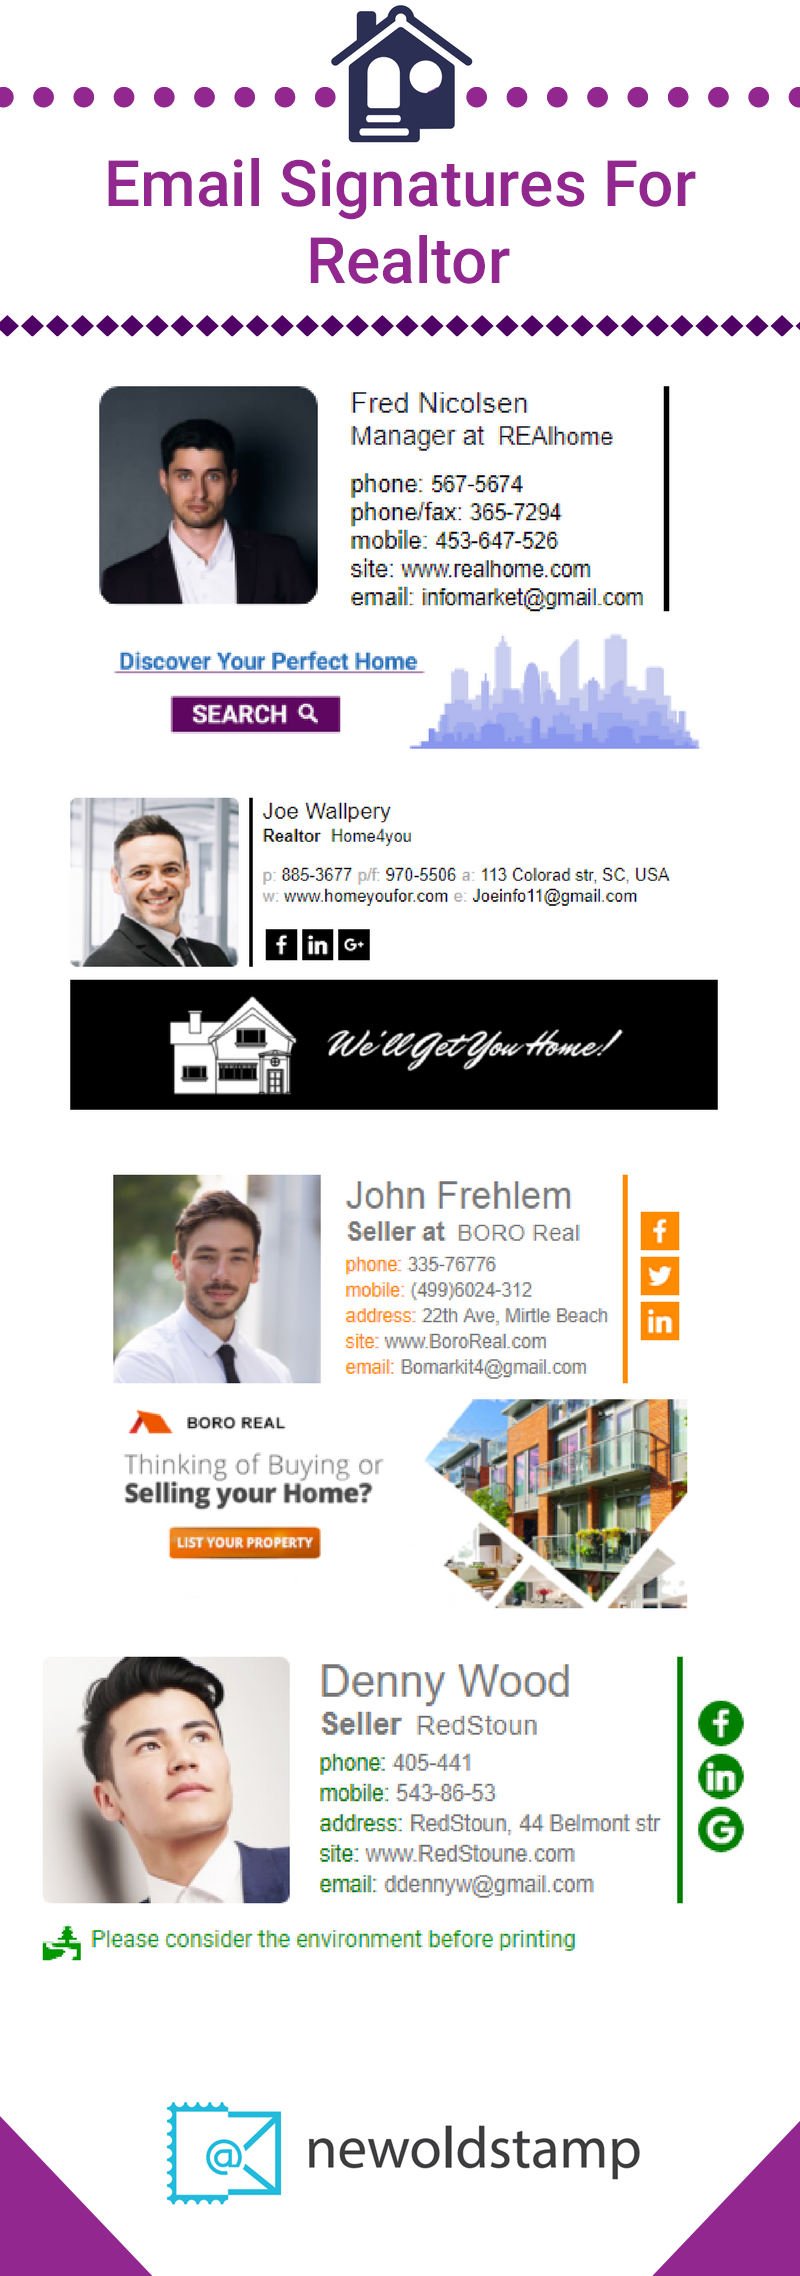 NEWOLDSTAMP email signature examples for realtors (With